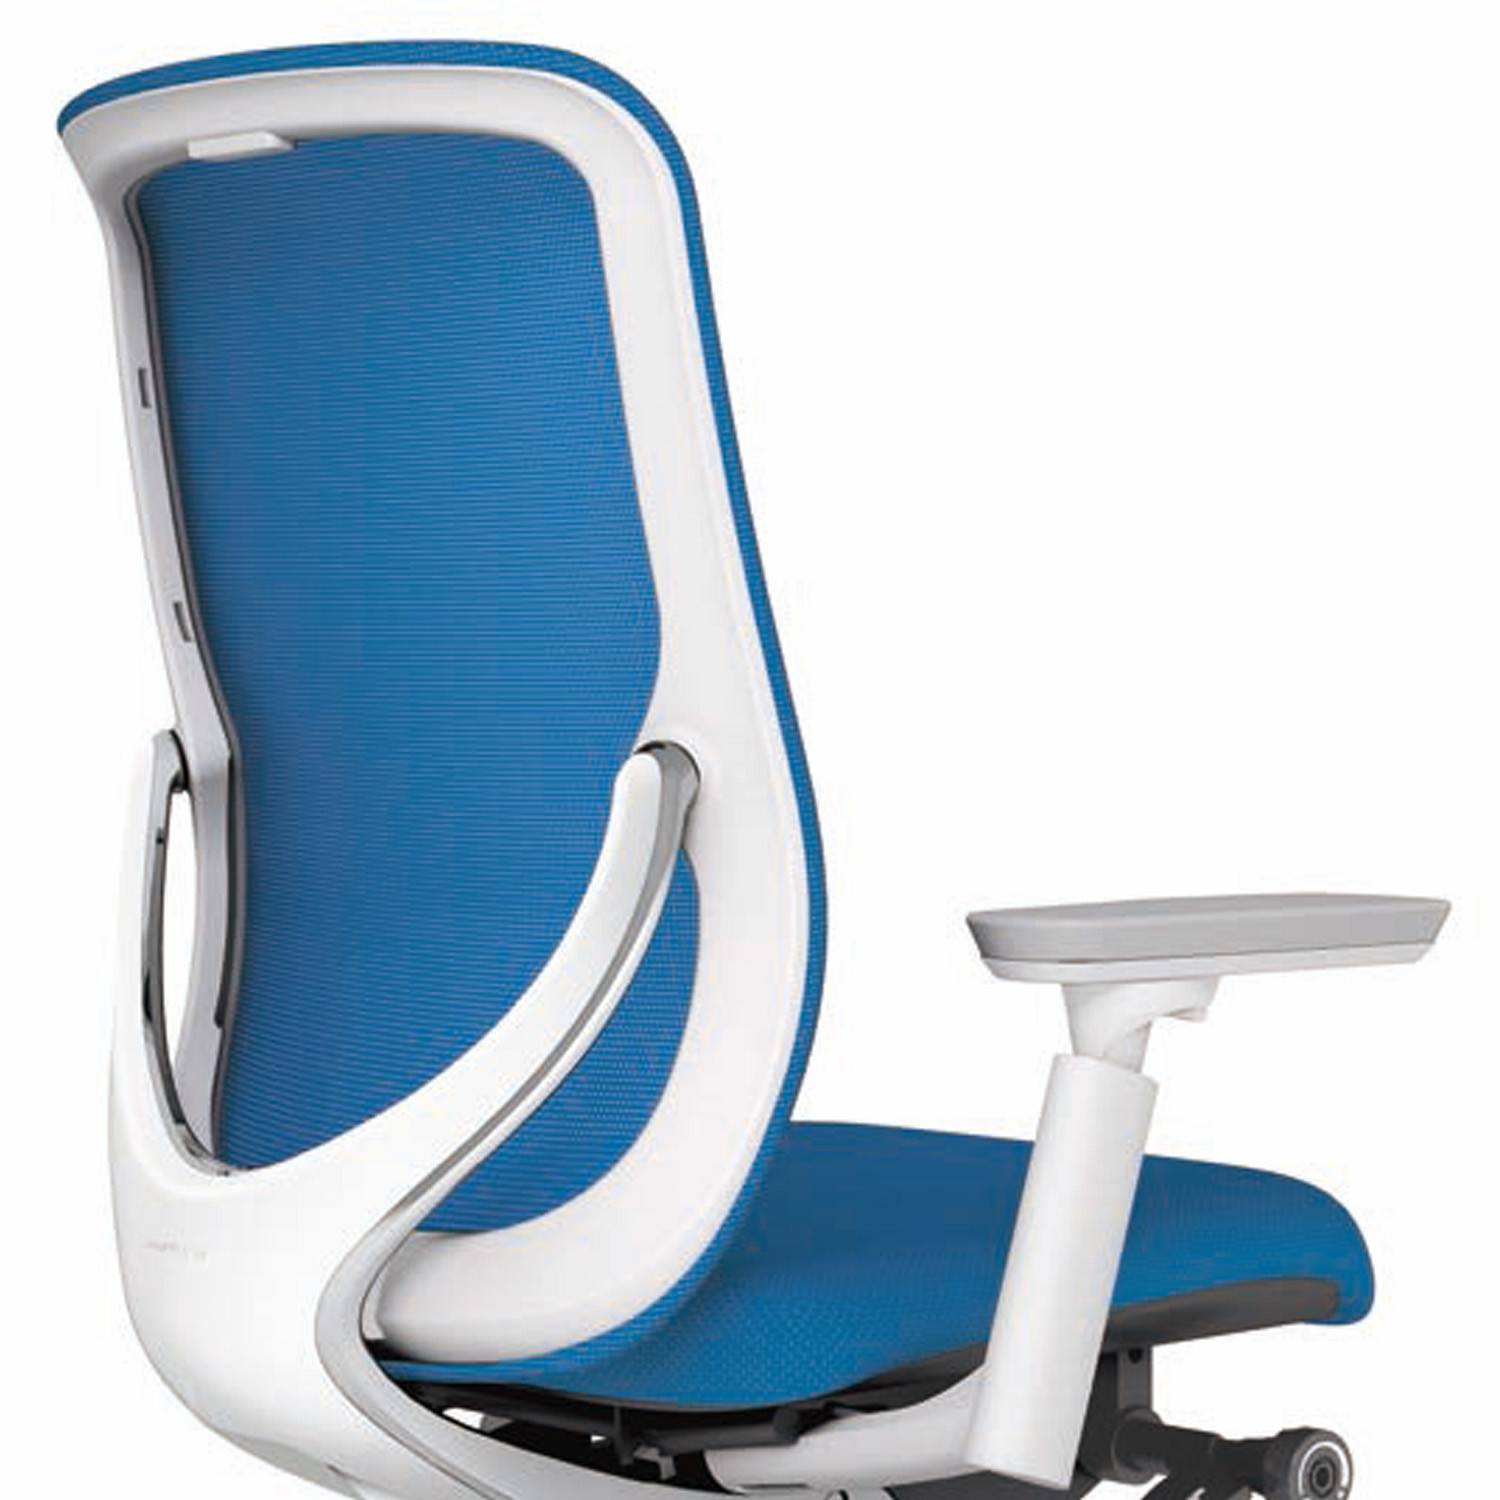 Zephyr Light Office Mesh Back Chair